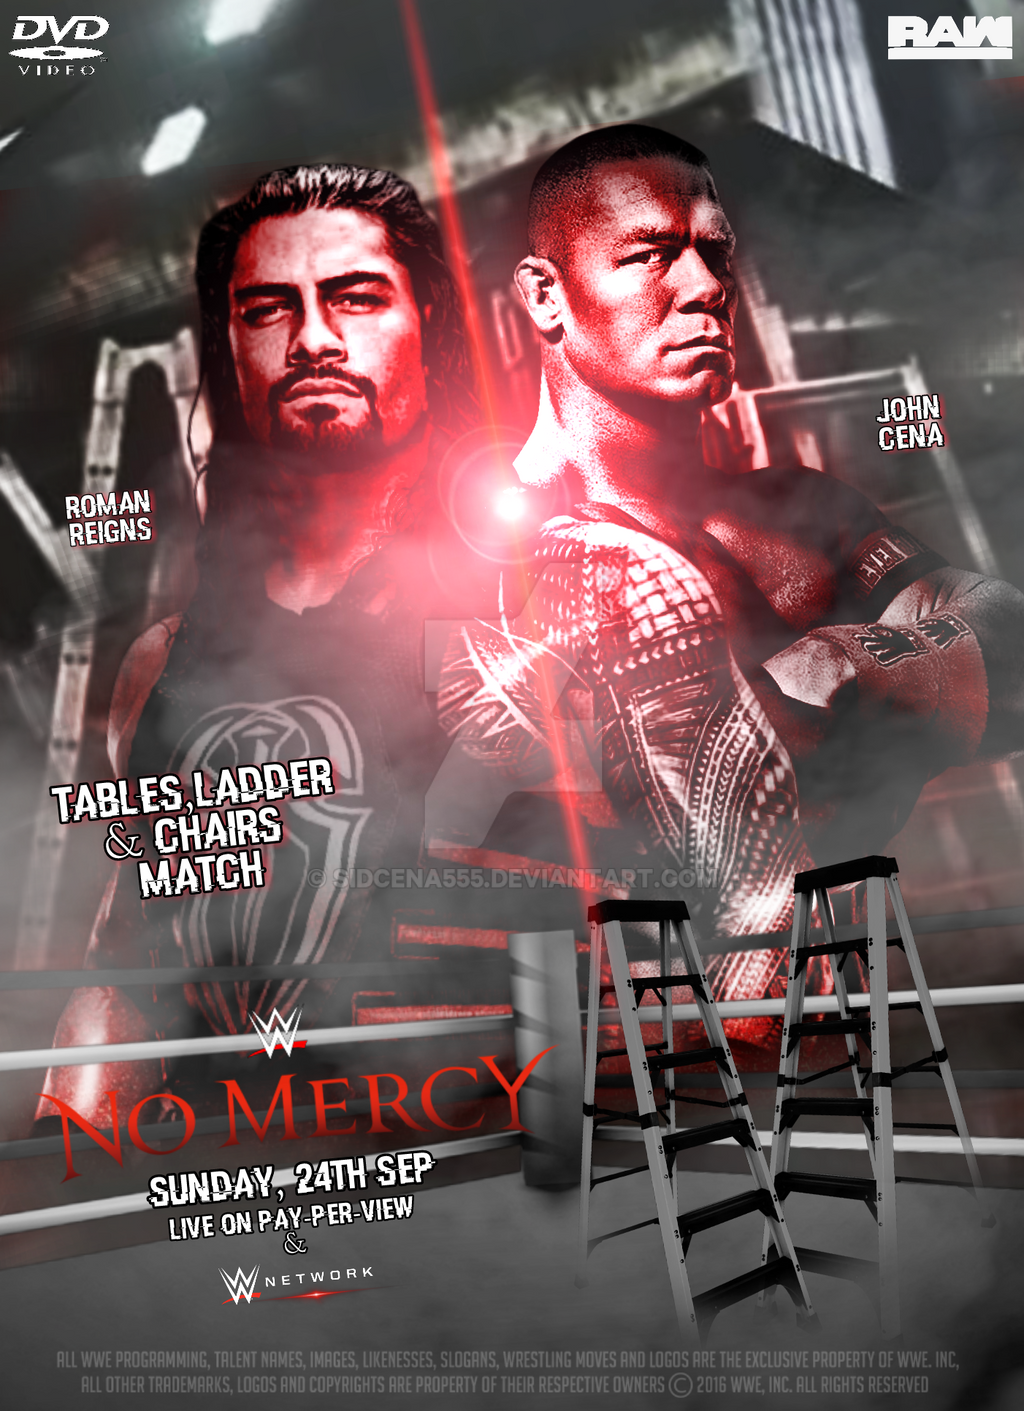 Wwe tables ladders and chairs 2013 poster - Shadykt26 7 7 Wwe No Mercy Poster 2017 By Sidcena555